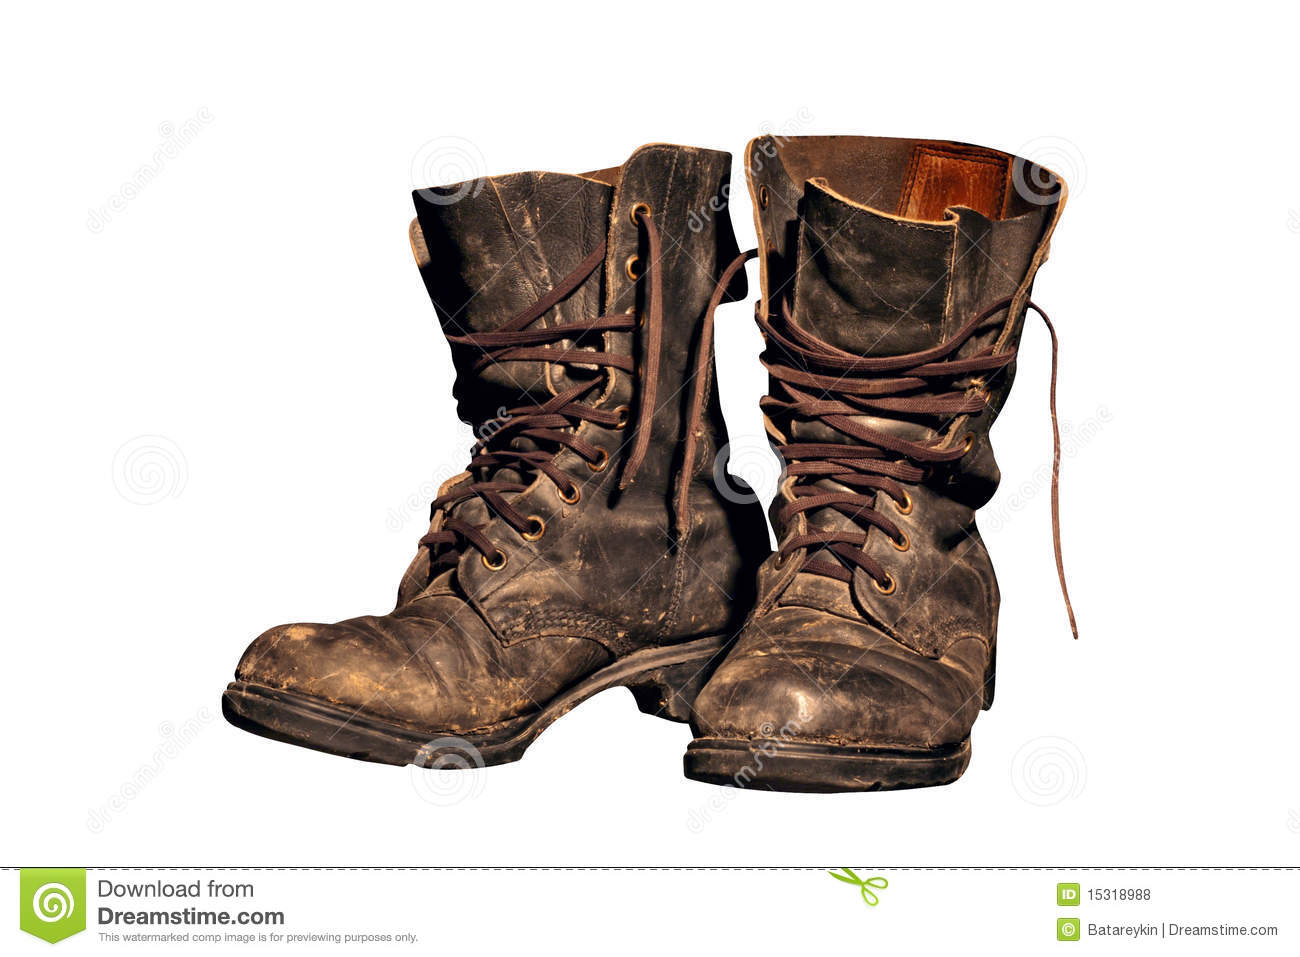 Worn Work Boots Stock Photos, Images, & Pictures.